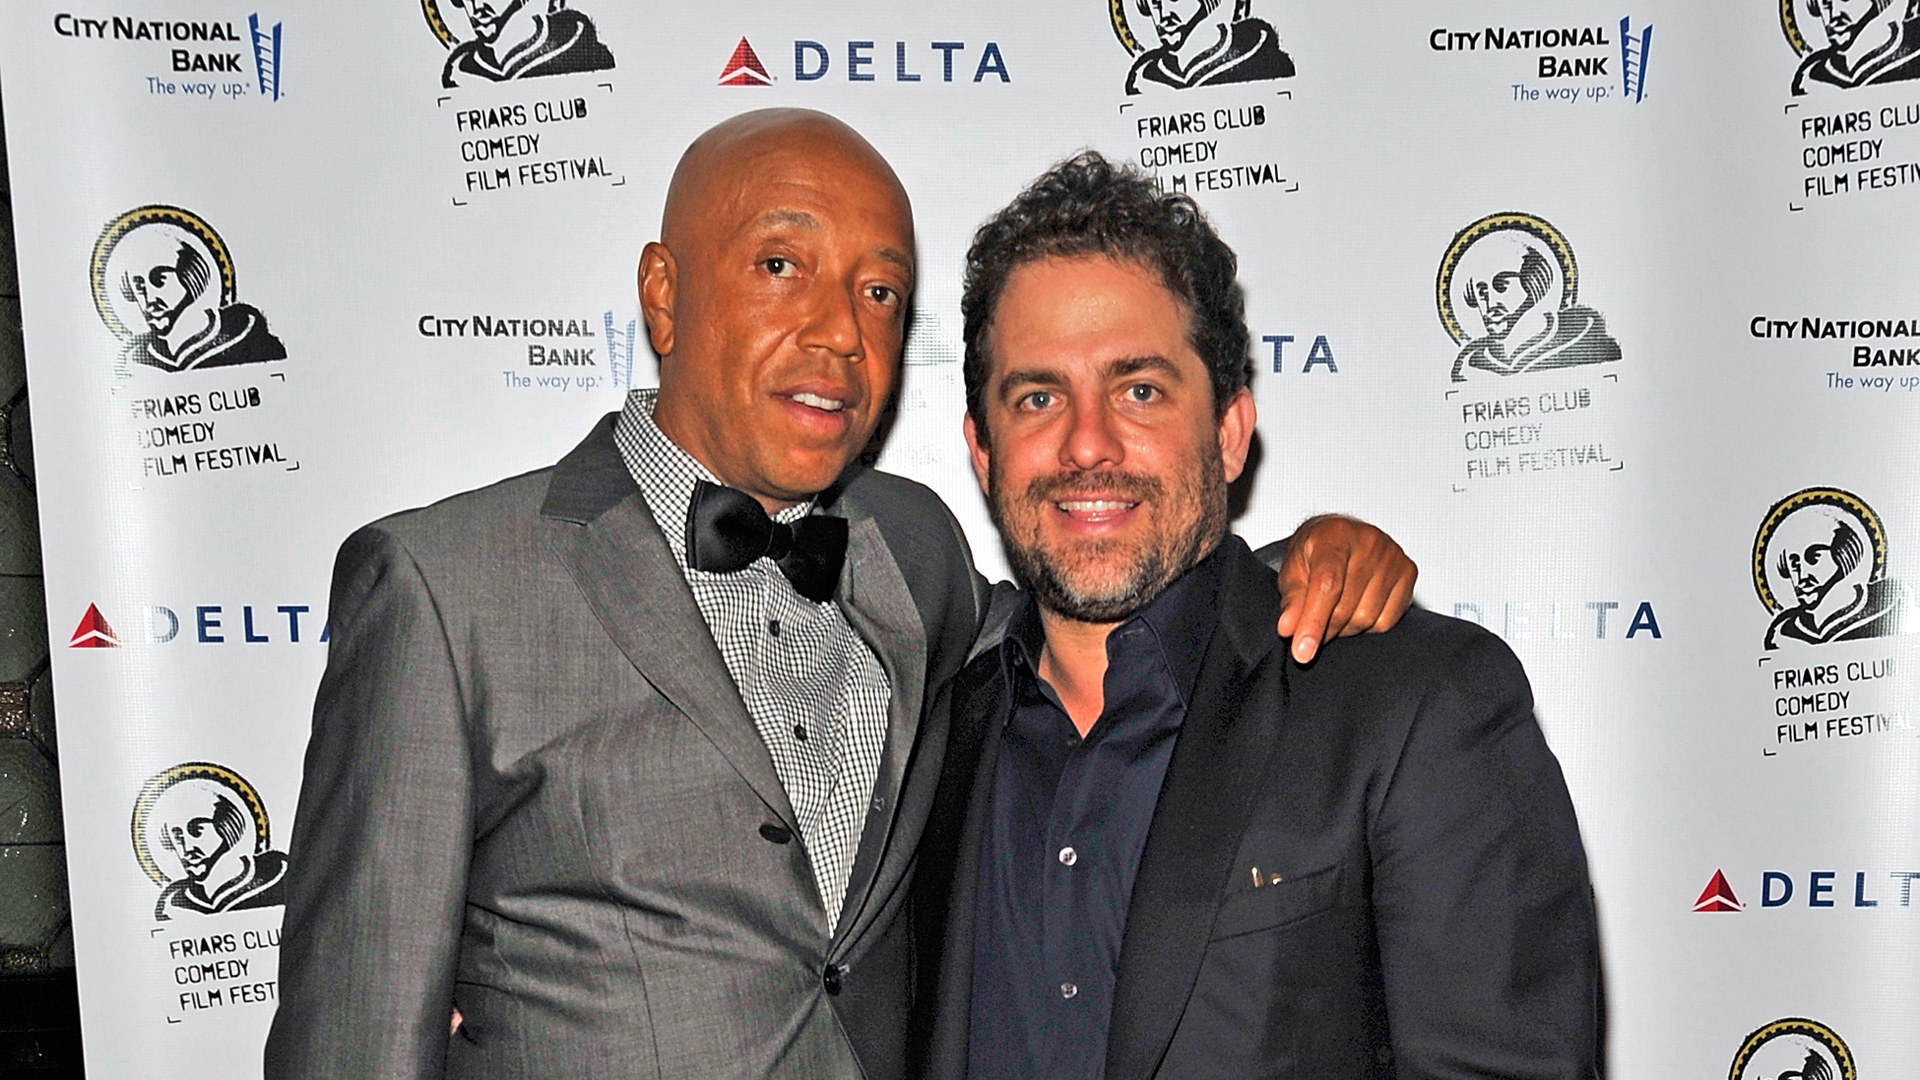 American business magnate Russell Simmons and director Brett Ratner attend the 2011 Friars Club Comedy Film Festival at the New York Friars Club on October 15, 2011. (Credit: Joe Corrigan/Getty Images)